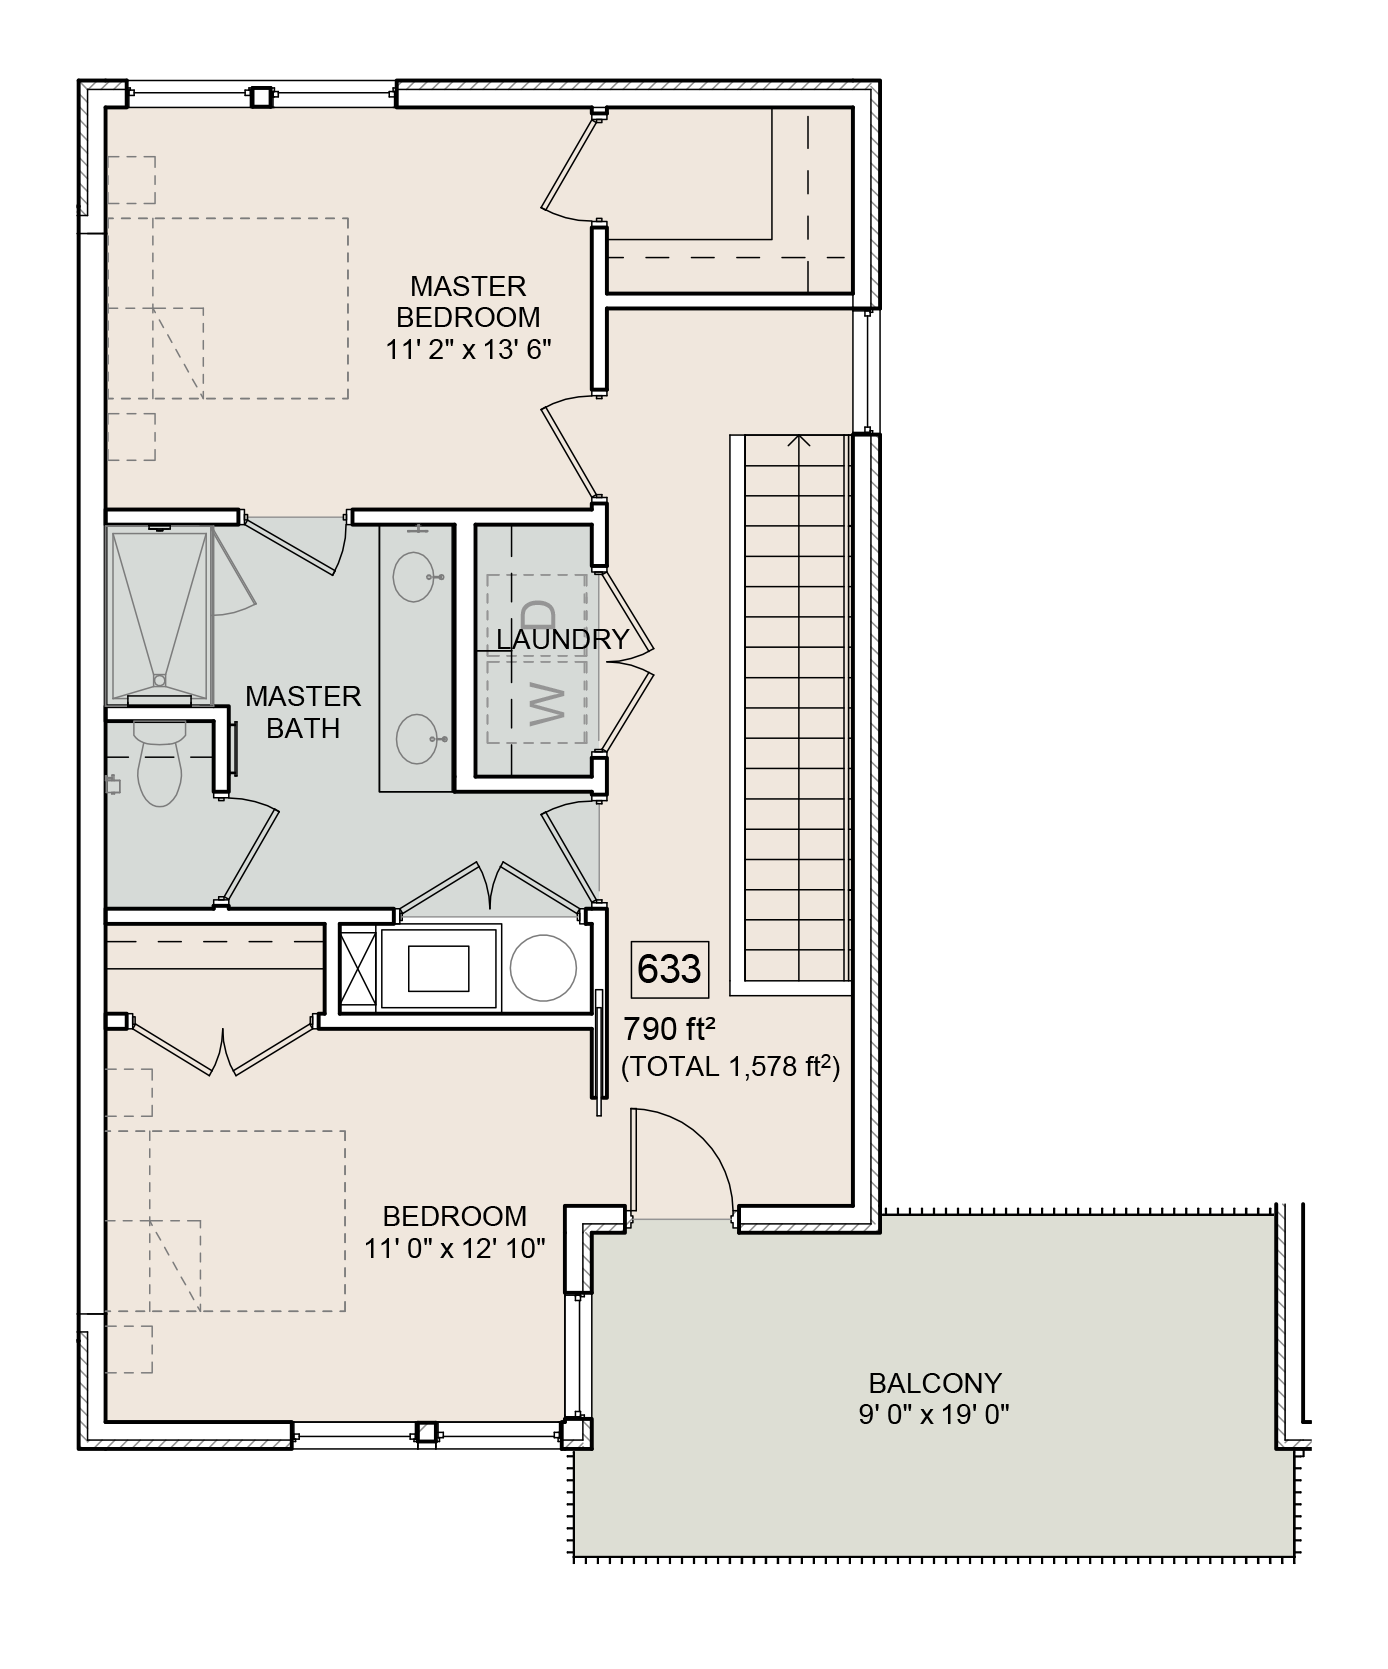 A Seuss unit with 2 Bedrooms and 2 Bathrooms with area of 1578 sq. ft